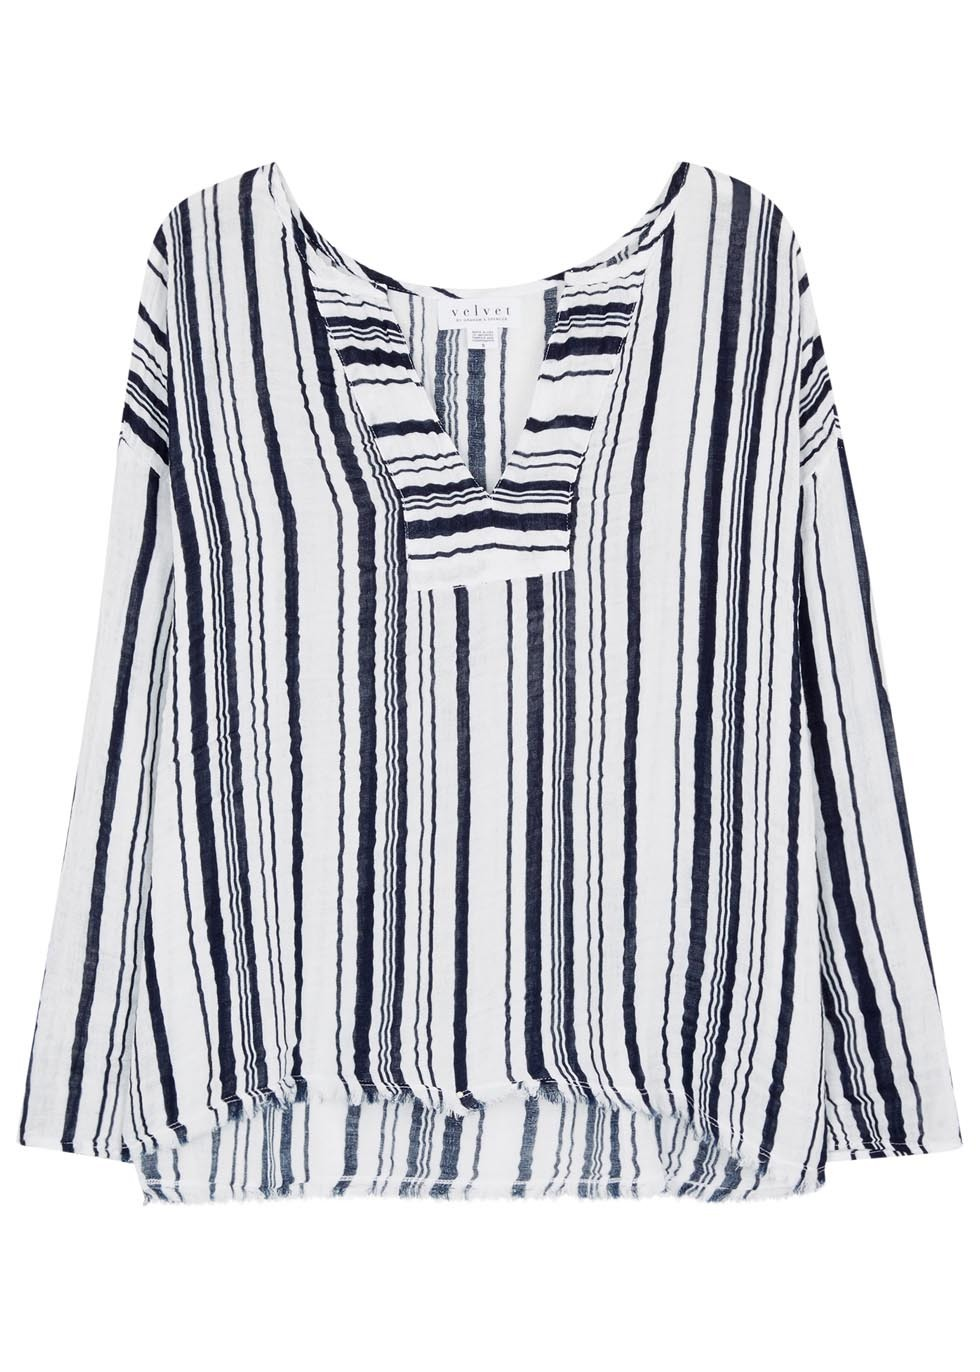 Celestia Striped Cotton Top - neckline: v-neck; pattern: vertical stripes; predominant colour: white; secondary colour: black; occasions: casual, holiday; length: standard; style: top; fibres: cotton - 100%; fit: body skimming; sleeve length: long sleeve; sleeve style: standard; pattern type: fabric; texture group: jersey - stretchy/drapey; pattern size: big & busy (top); multicoloured: multicoloured; season: s/s 2016